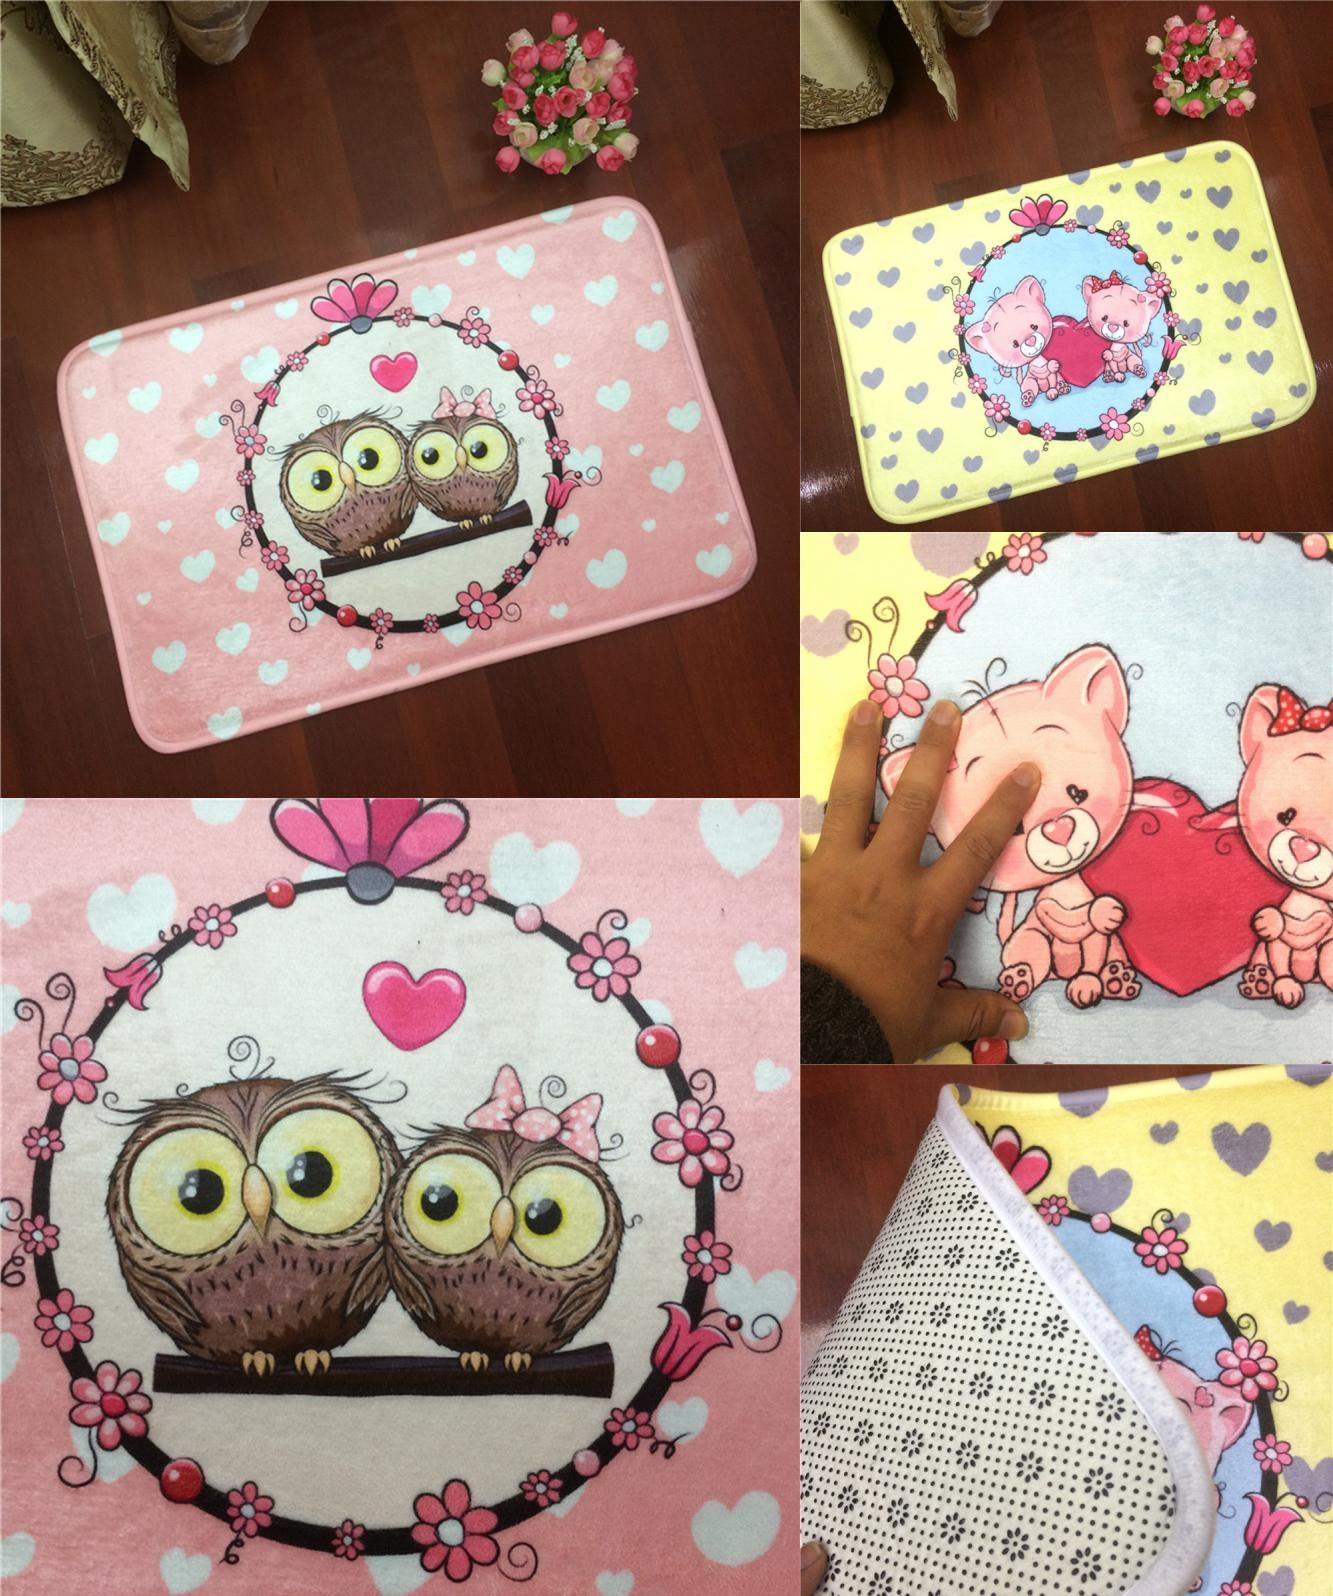 [Visit to Buy] Fashion Brand Cartoon  Owl Mat Living Room Bedroom Carpet Floor Mats A Bathing 40*60cm Size Home Decoration Non-slip Mats DT62 #Advertisement